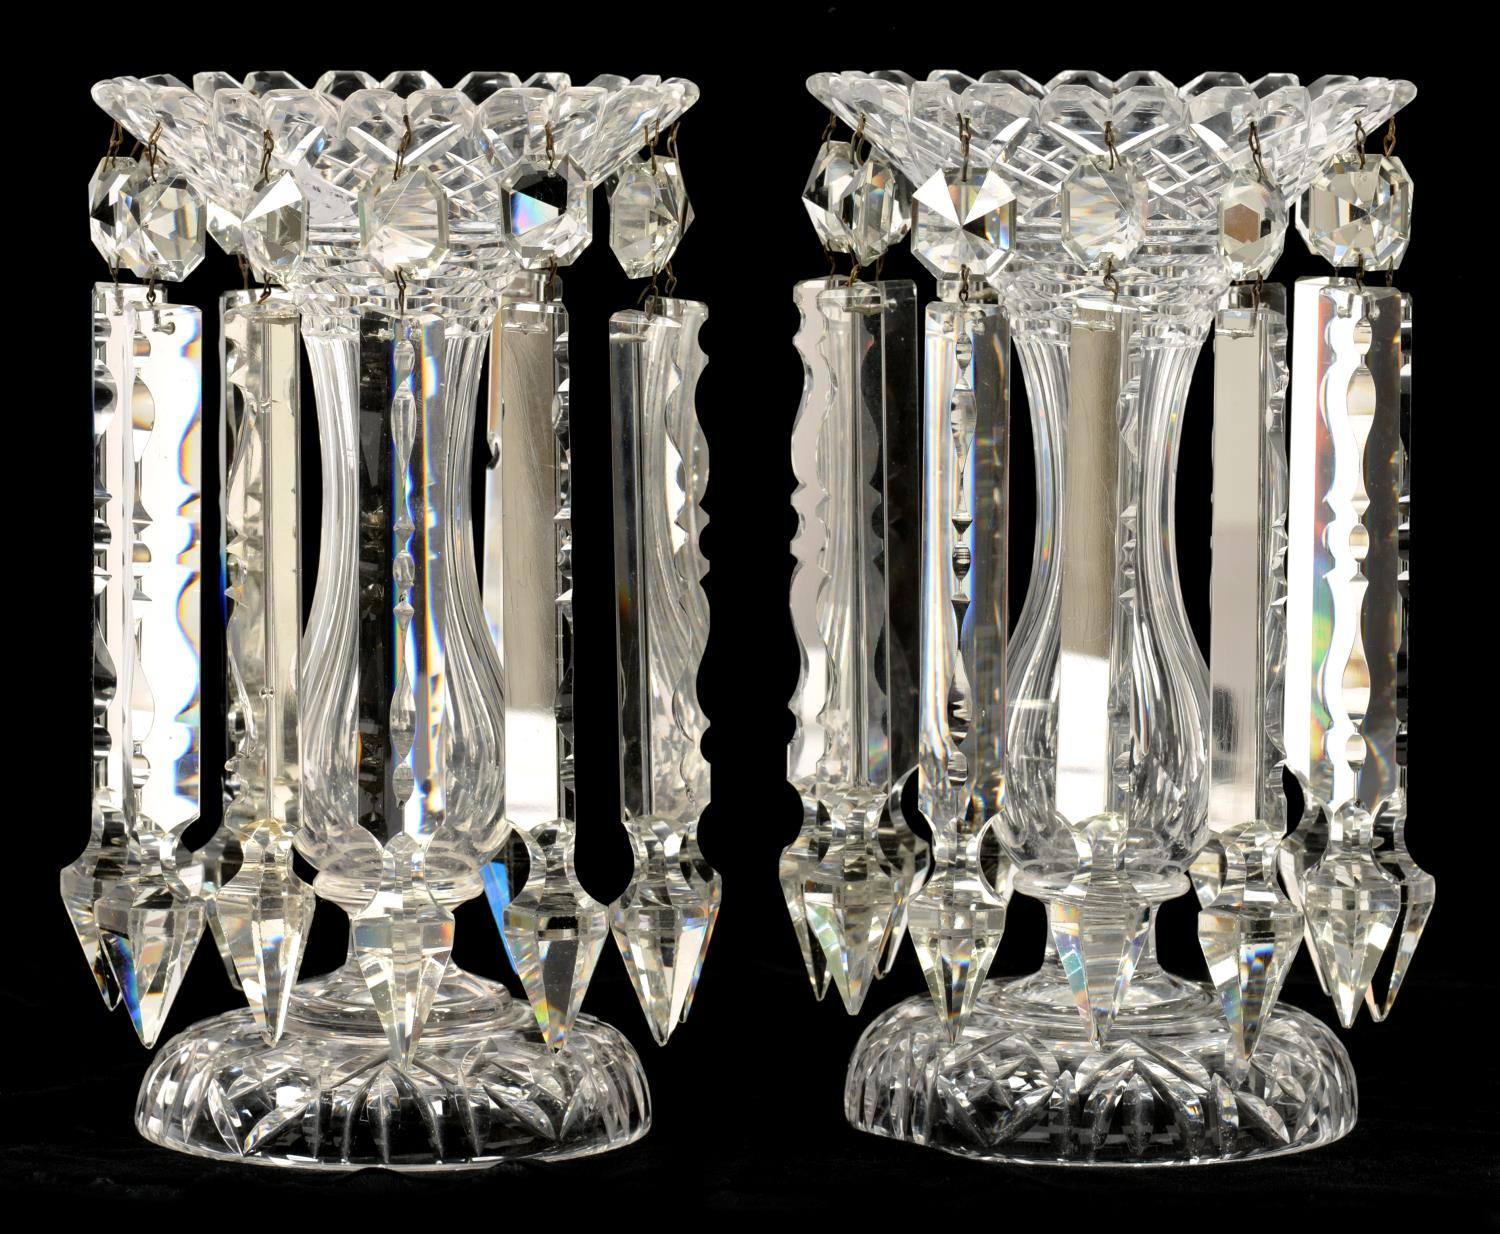 Lot 379A - A PAIR OF VICTORIAN CUT GLASS LUSTRES, LATE 19TH C hung with prismatic cut beads and drops, 28cm